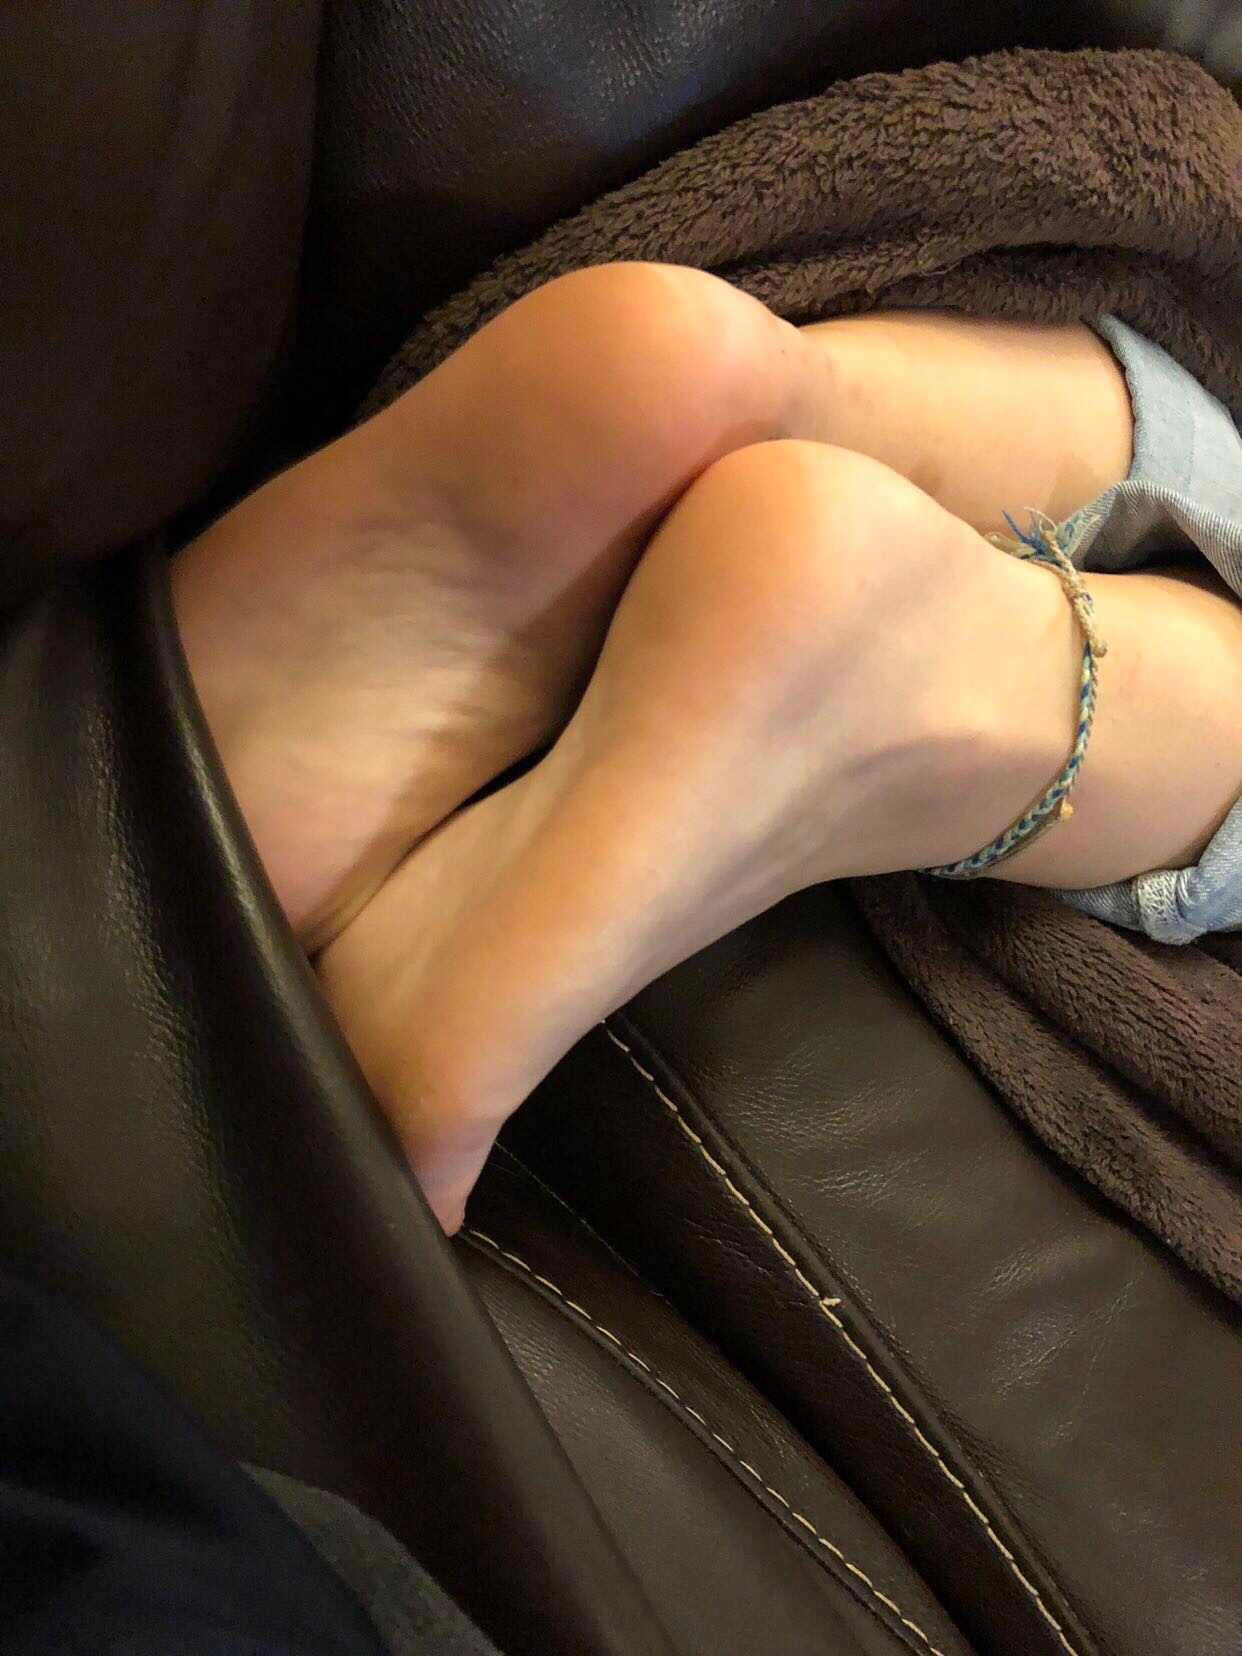 My Sleeping Aunt And Cousin Feet Story Pictures - The -5261